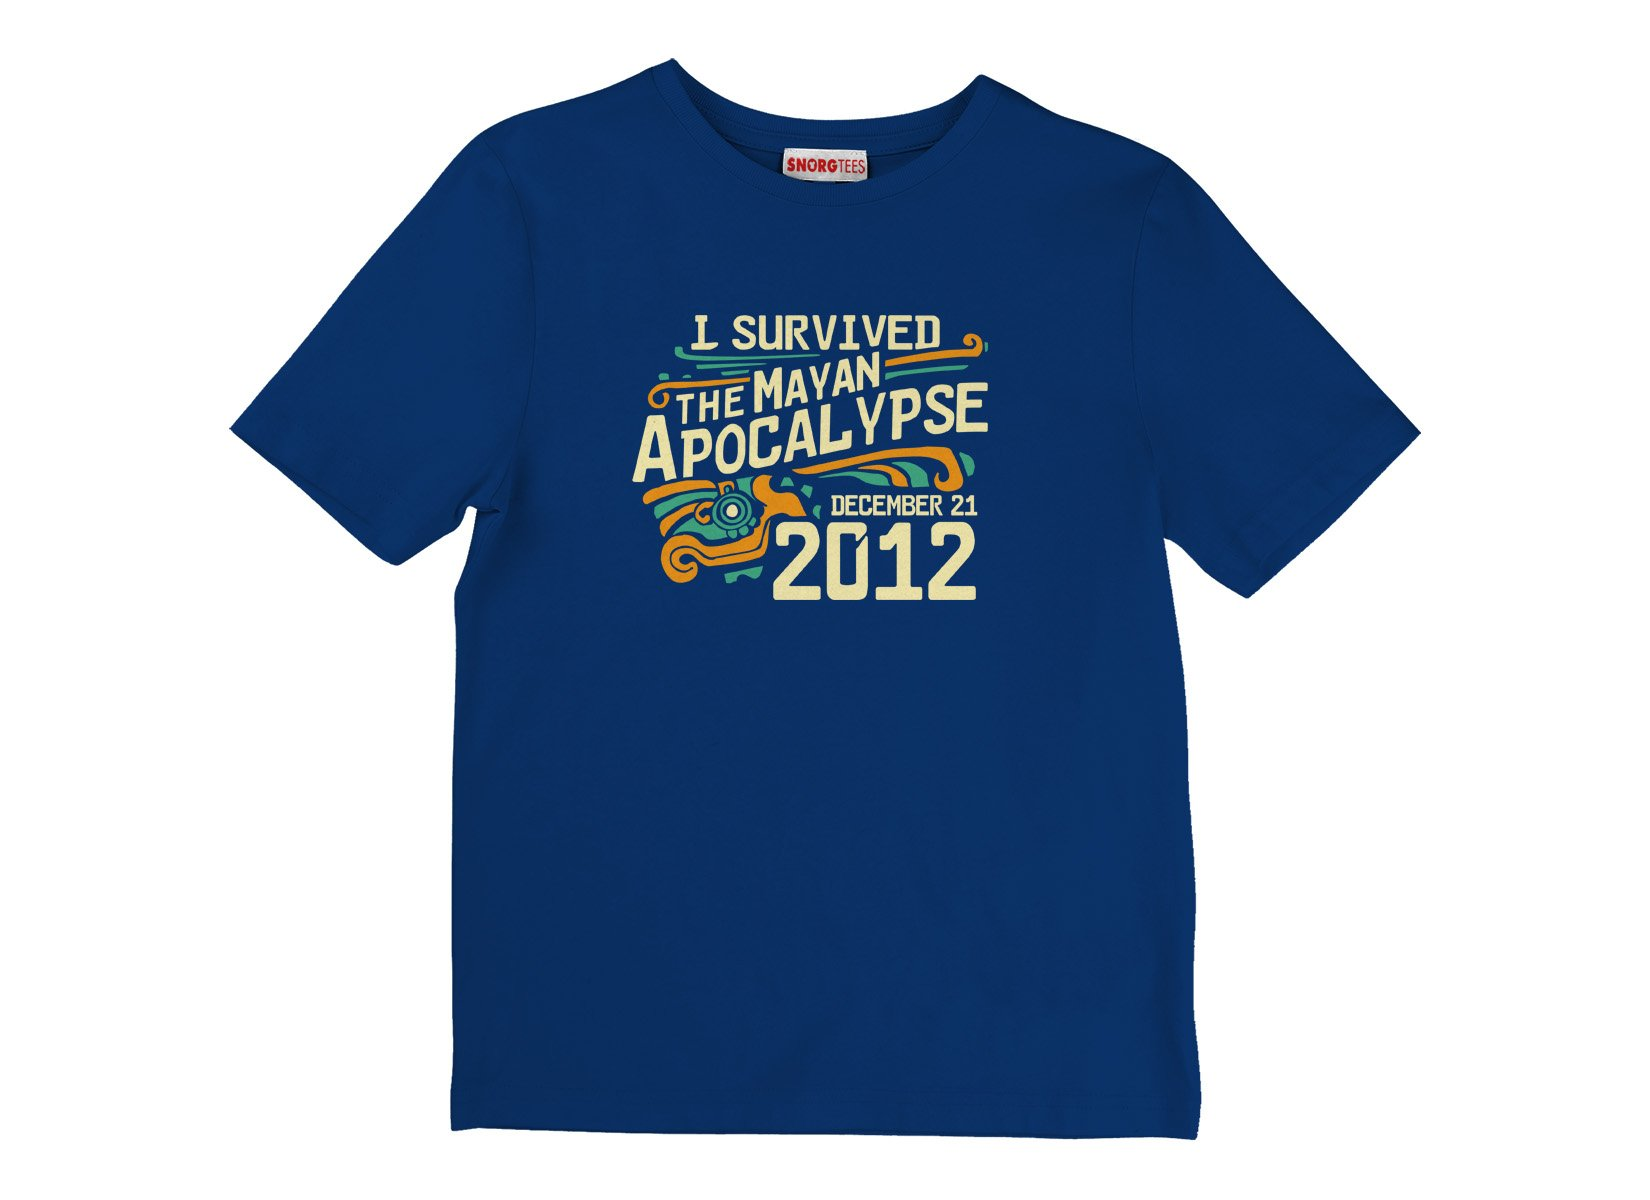 I Survived The Mayan Apocalypse on Kids T-Shirt